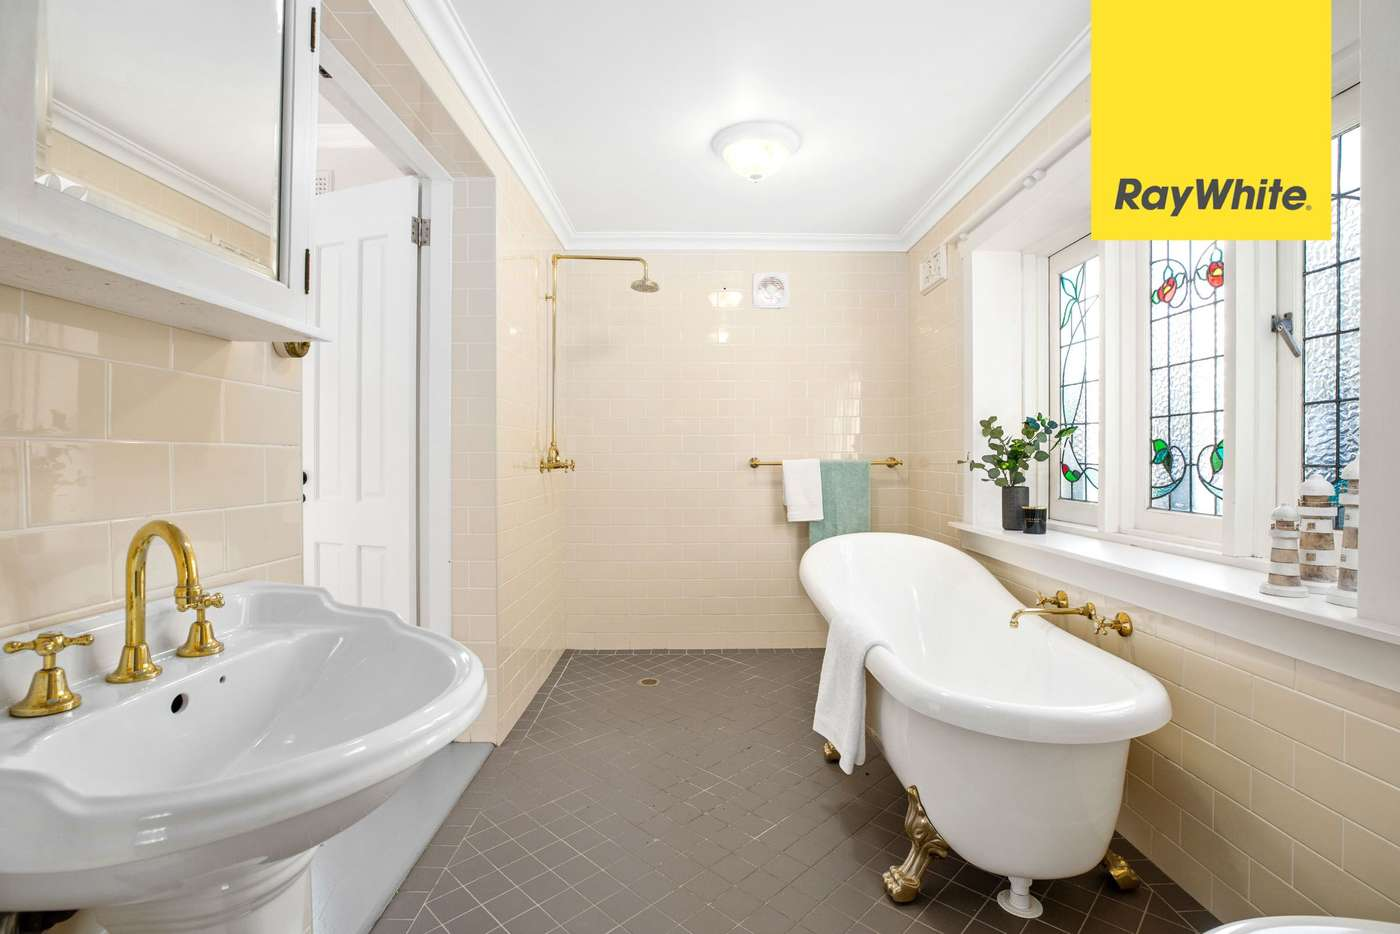 Fifth view of Homely house listing, 1100 Victoria Road, West Ryde NSW 2114